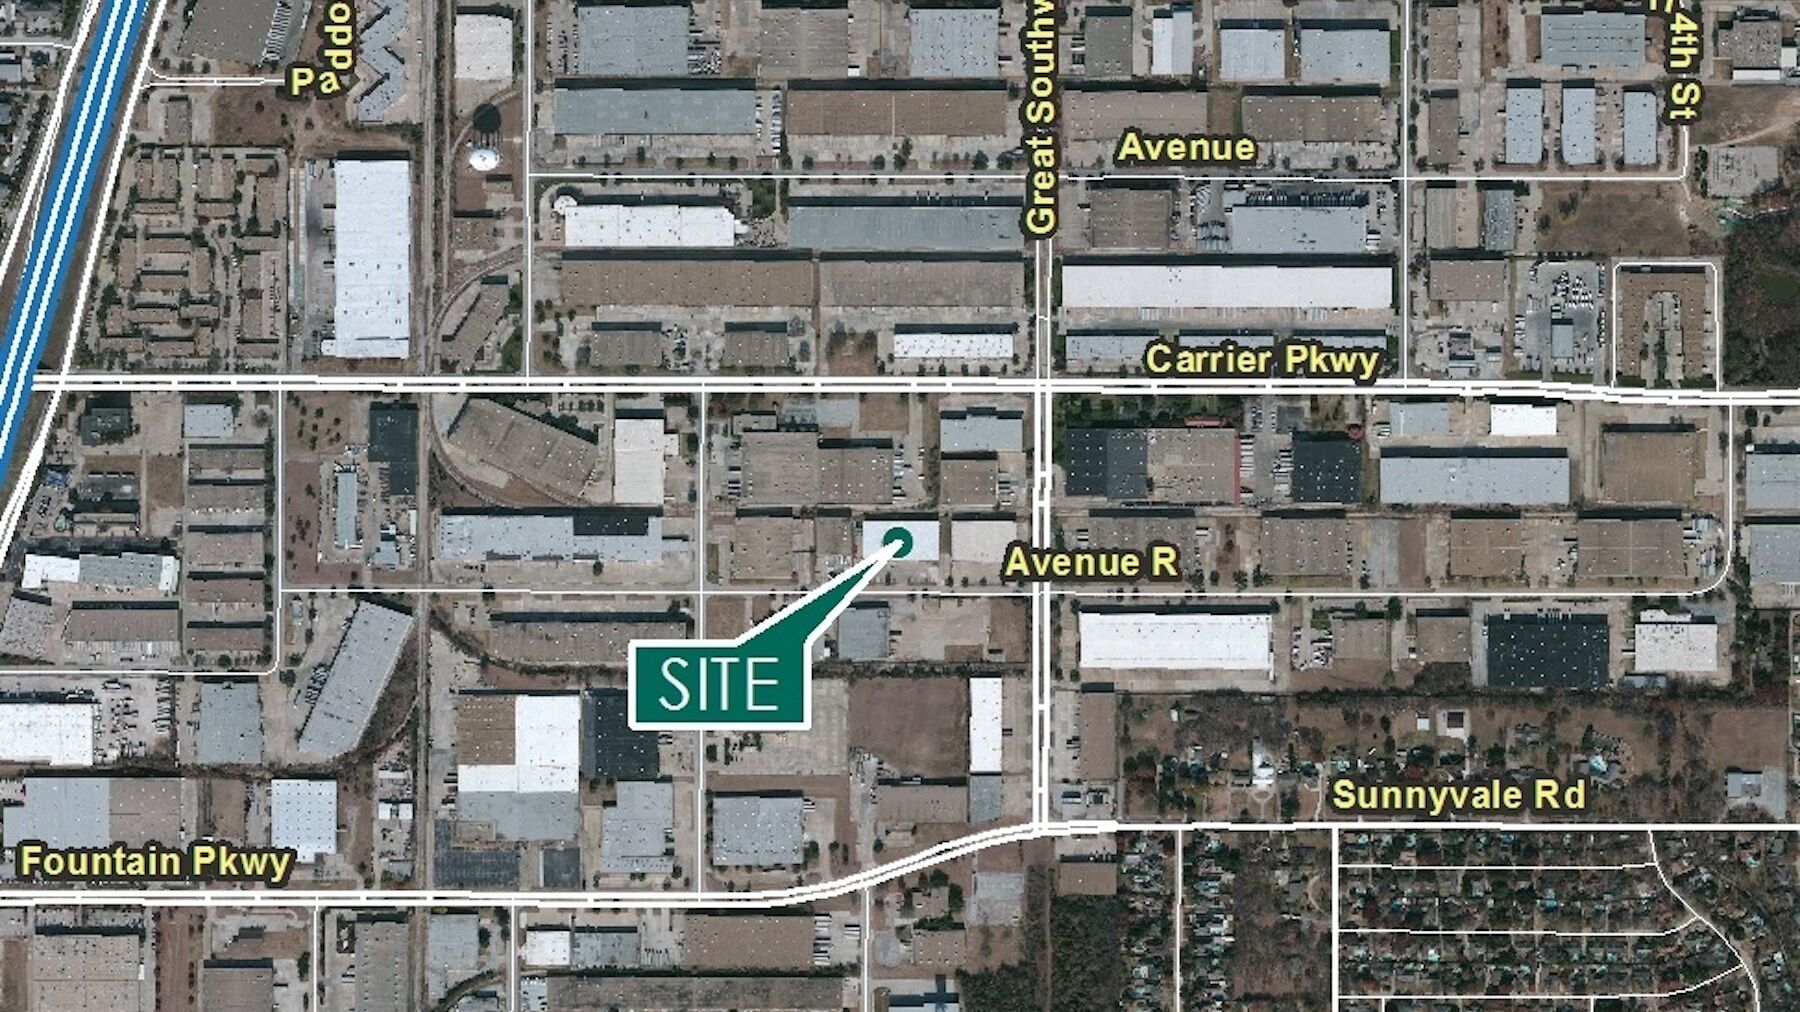 DPM-Prologis-Great-Southwest-34-DAL01734-1125-Avenue-R_AerialMap.jpg